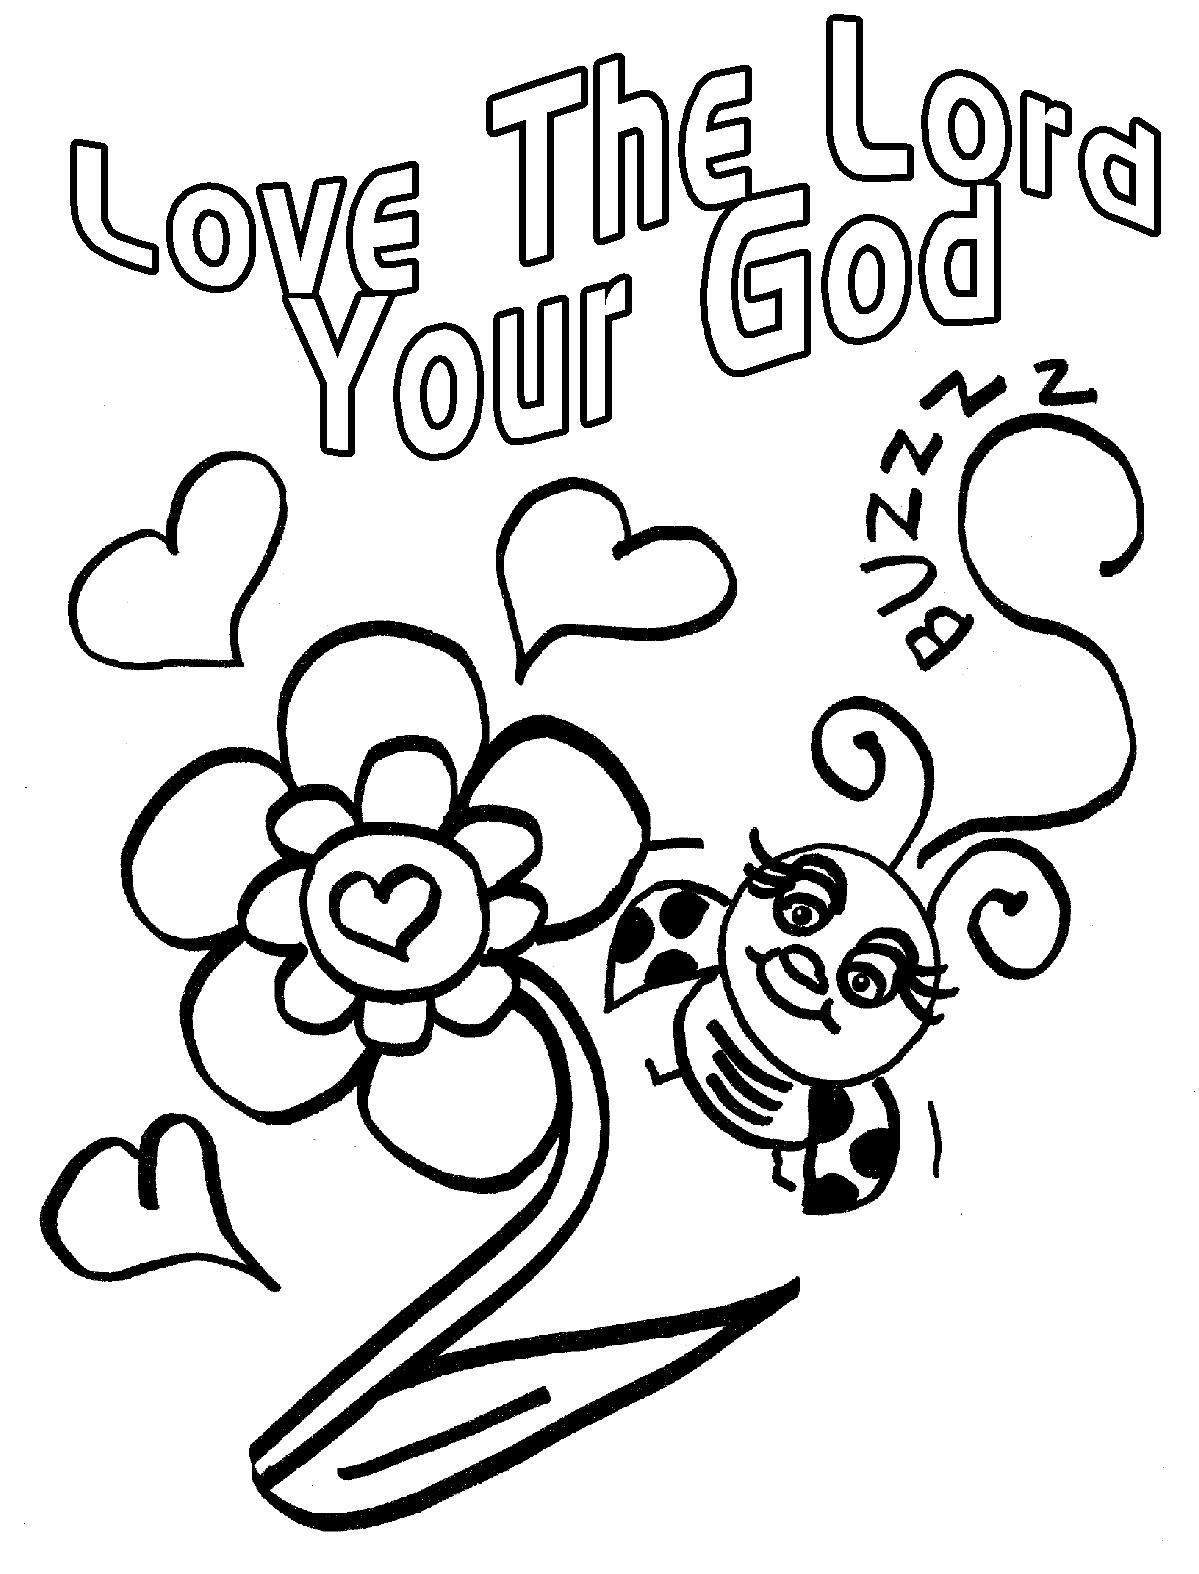 christian valentine coloring pages free | Printable Christian Valentine Coloring Pages John 3 16 ...